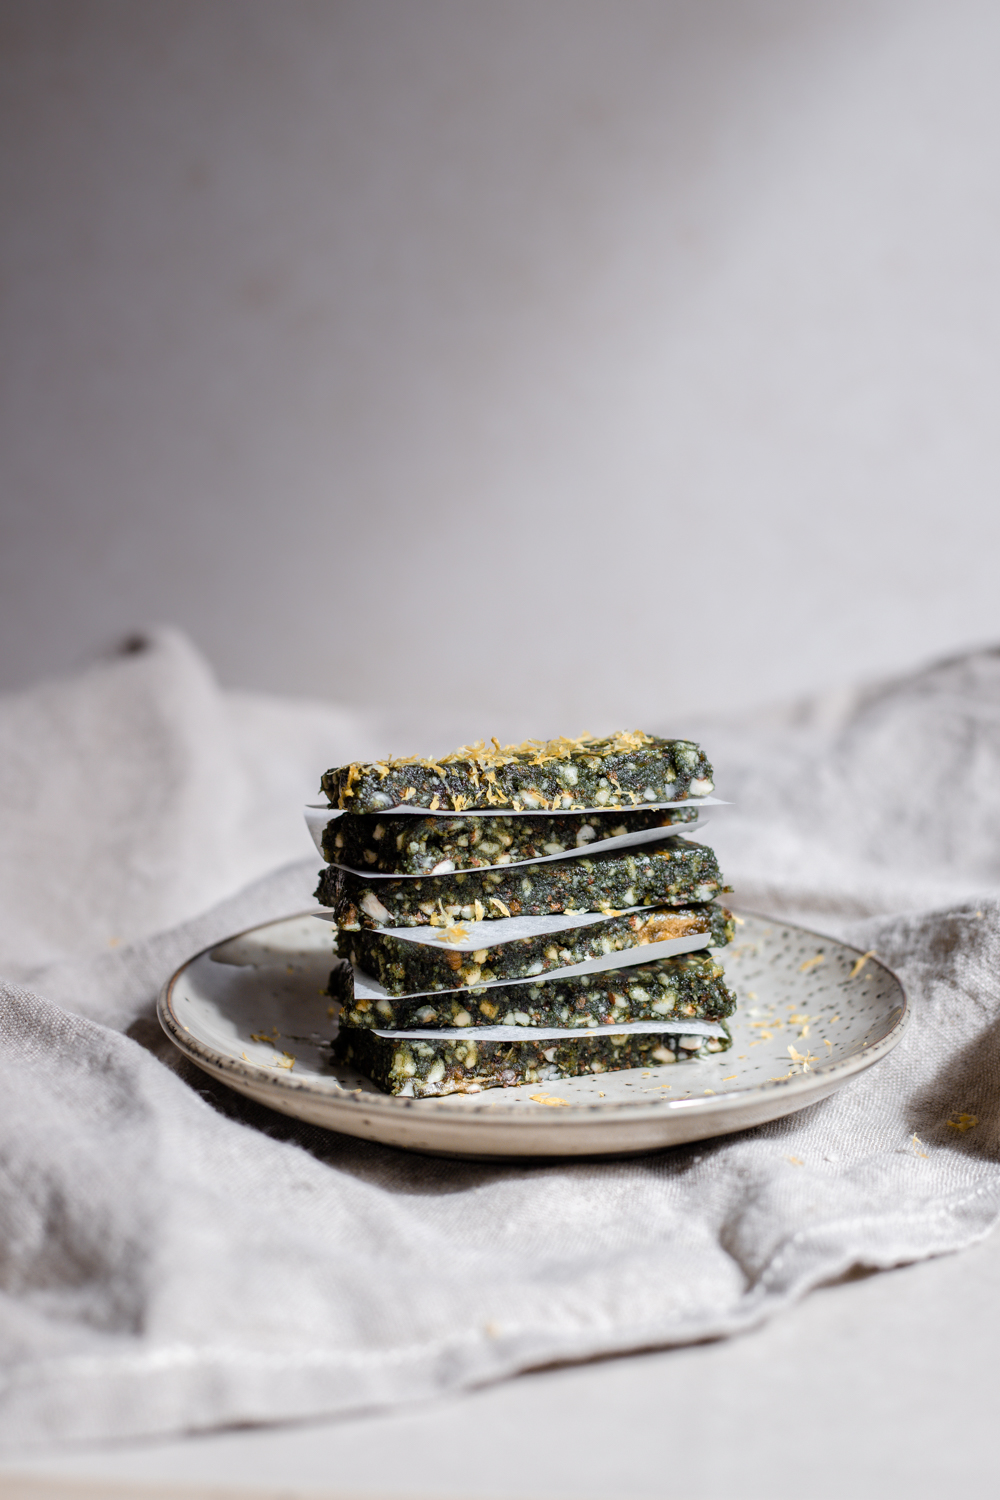 Citron & spirulina bars